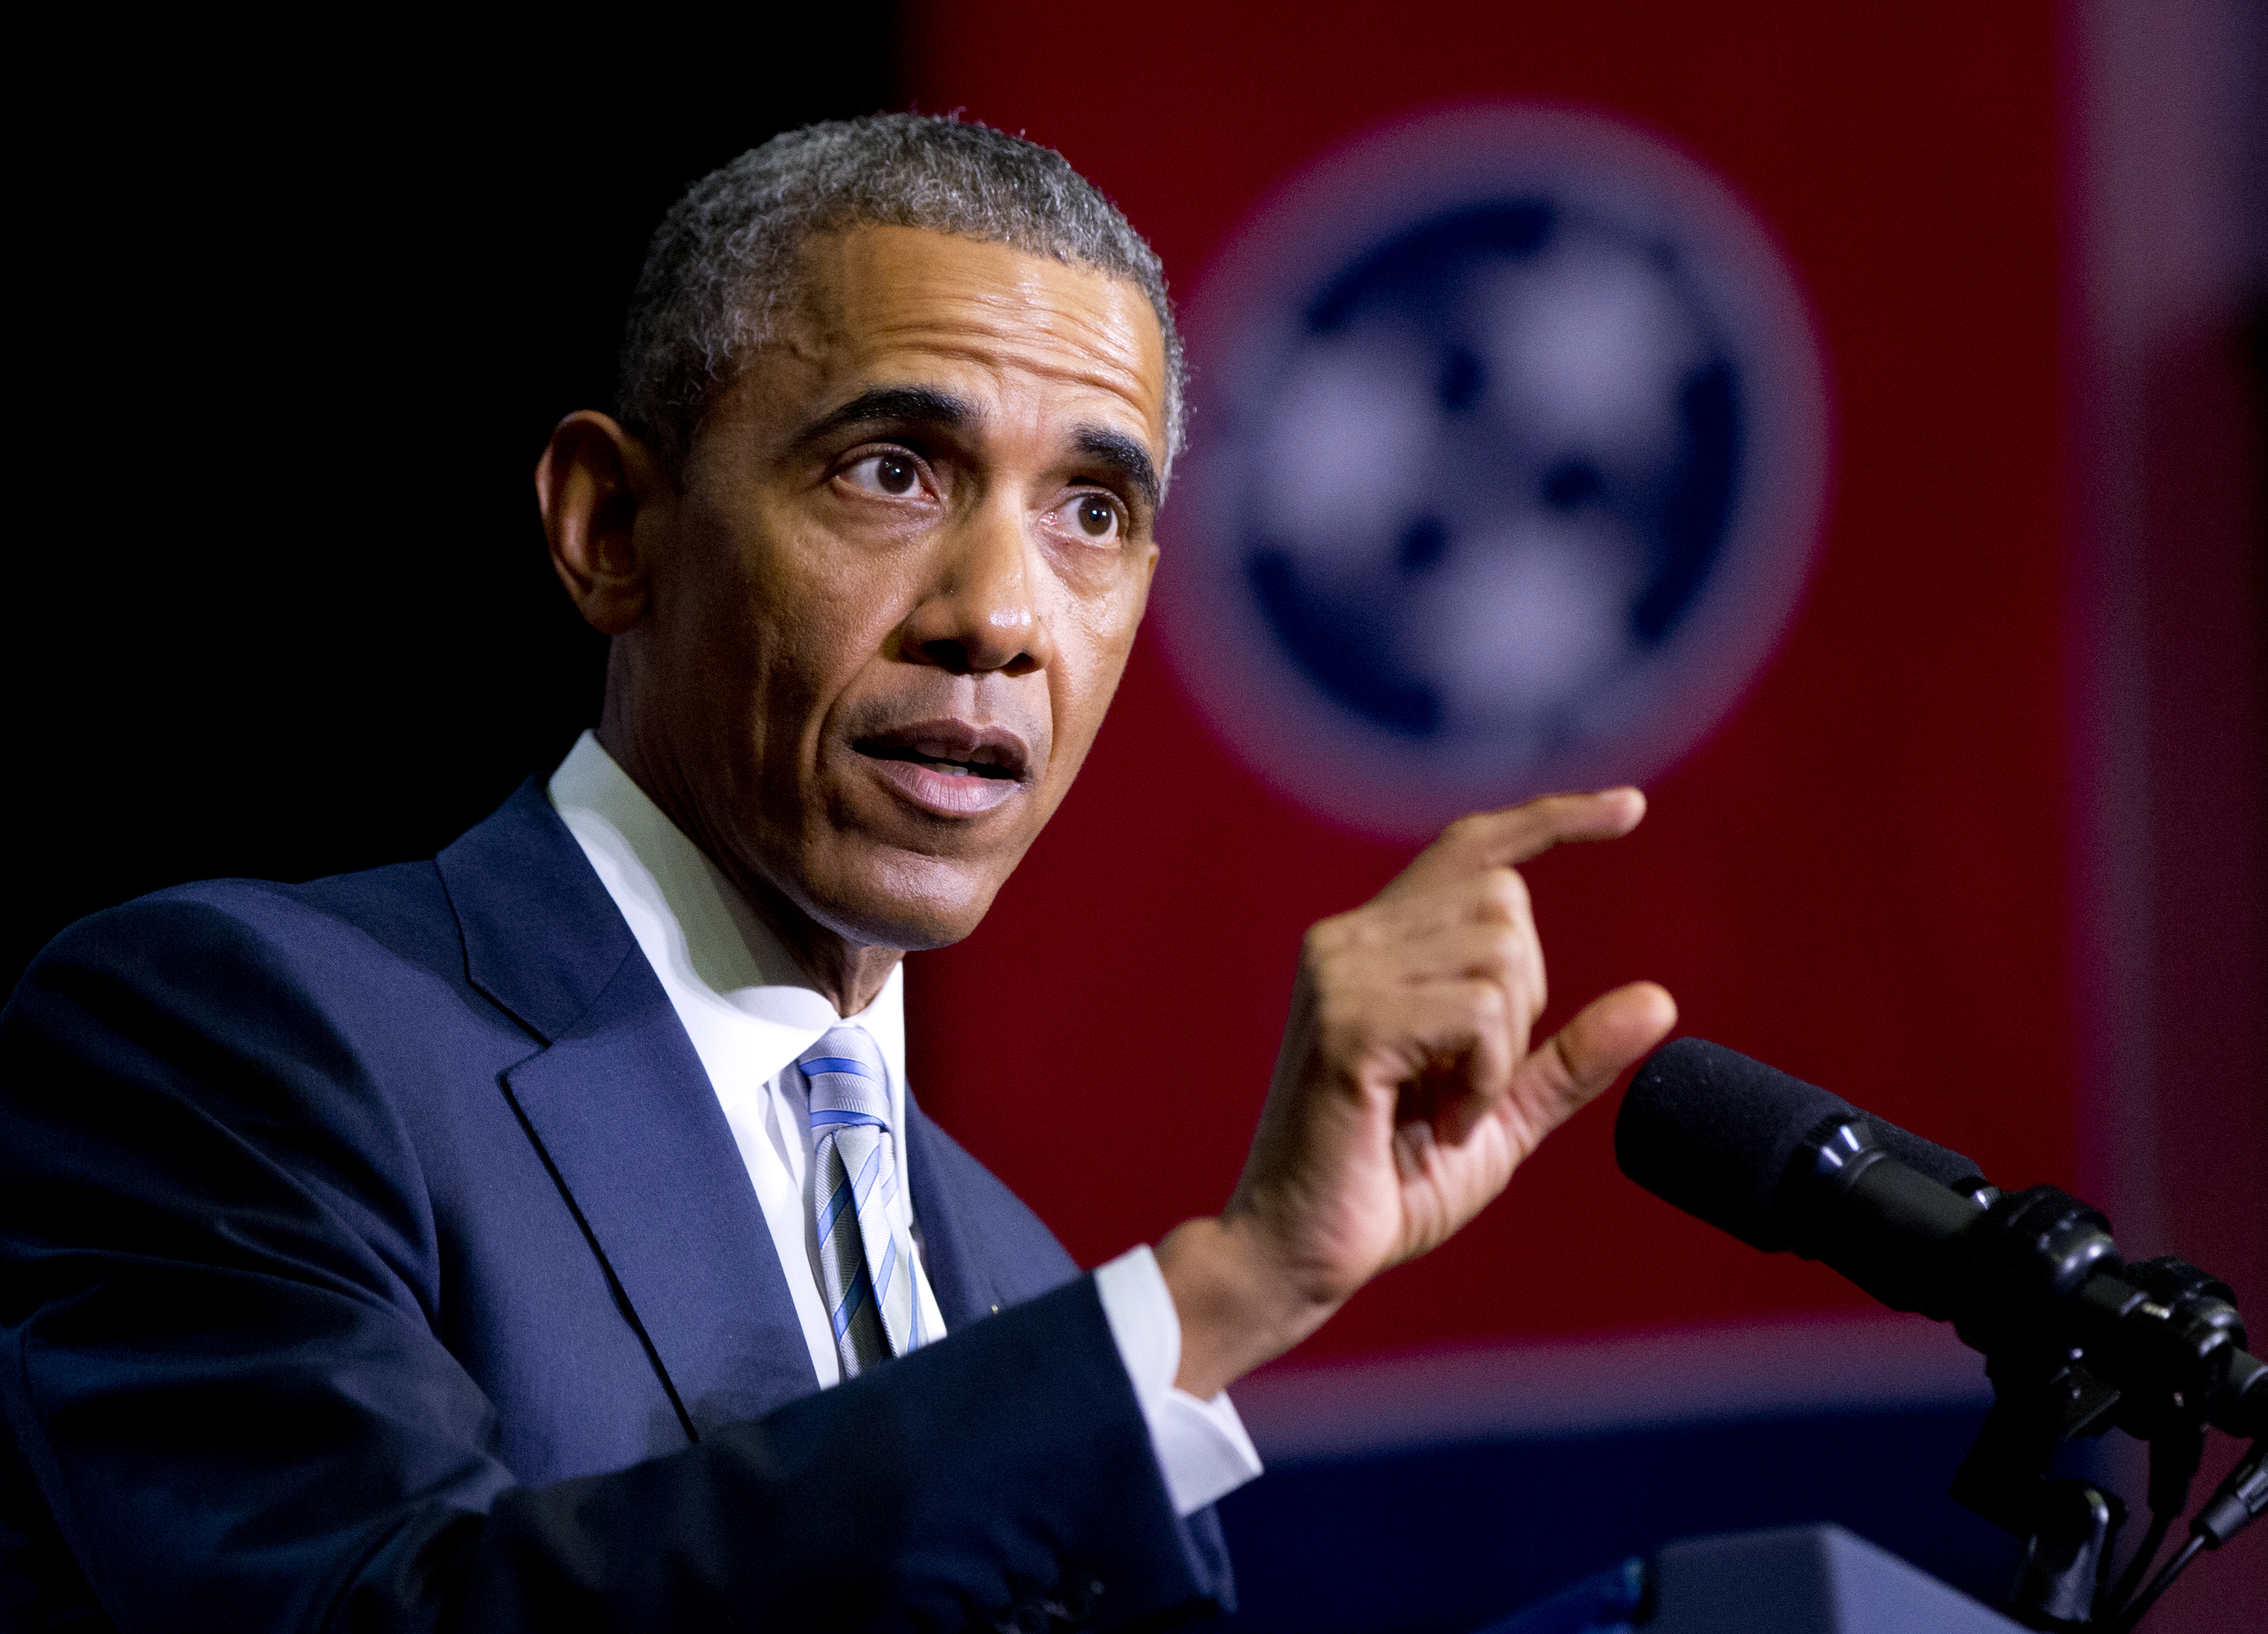 community college plan obama President barack obama will visit knoxville on friday to tout an initiative that  would make community college free for students nationwide.